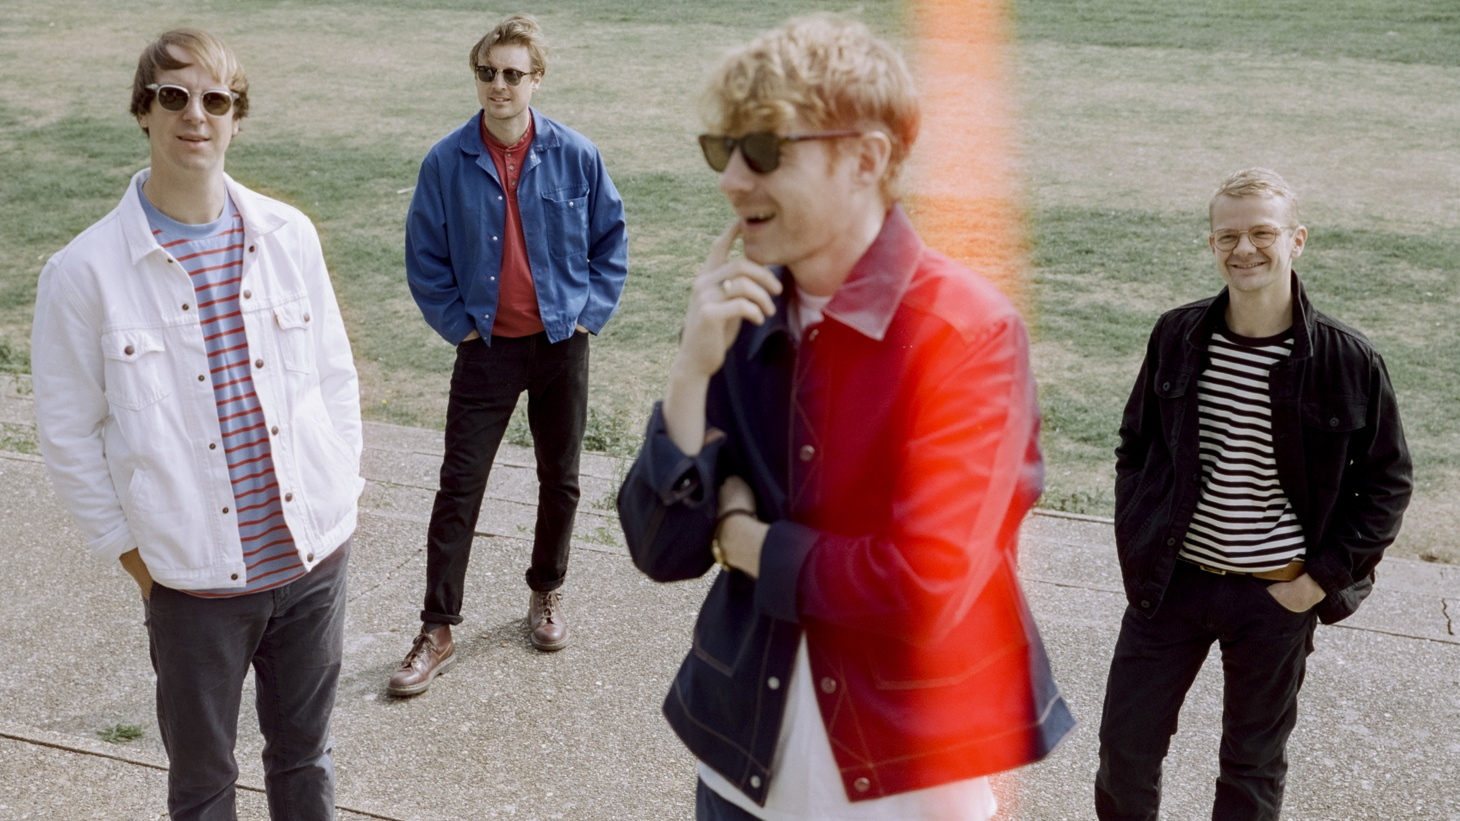 """The electrifying new song by Django Django """"Spirals"""" is a psychedelic rollercoaster ride and a rallying cry for hope. And yes, it does get faster and faster as it gains momentum."""